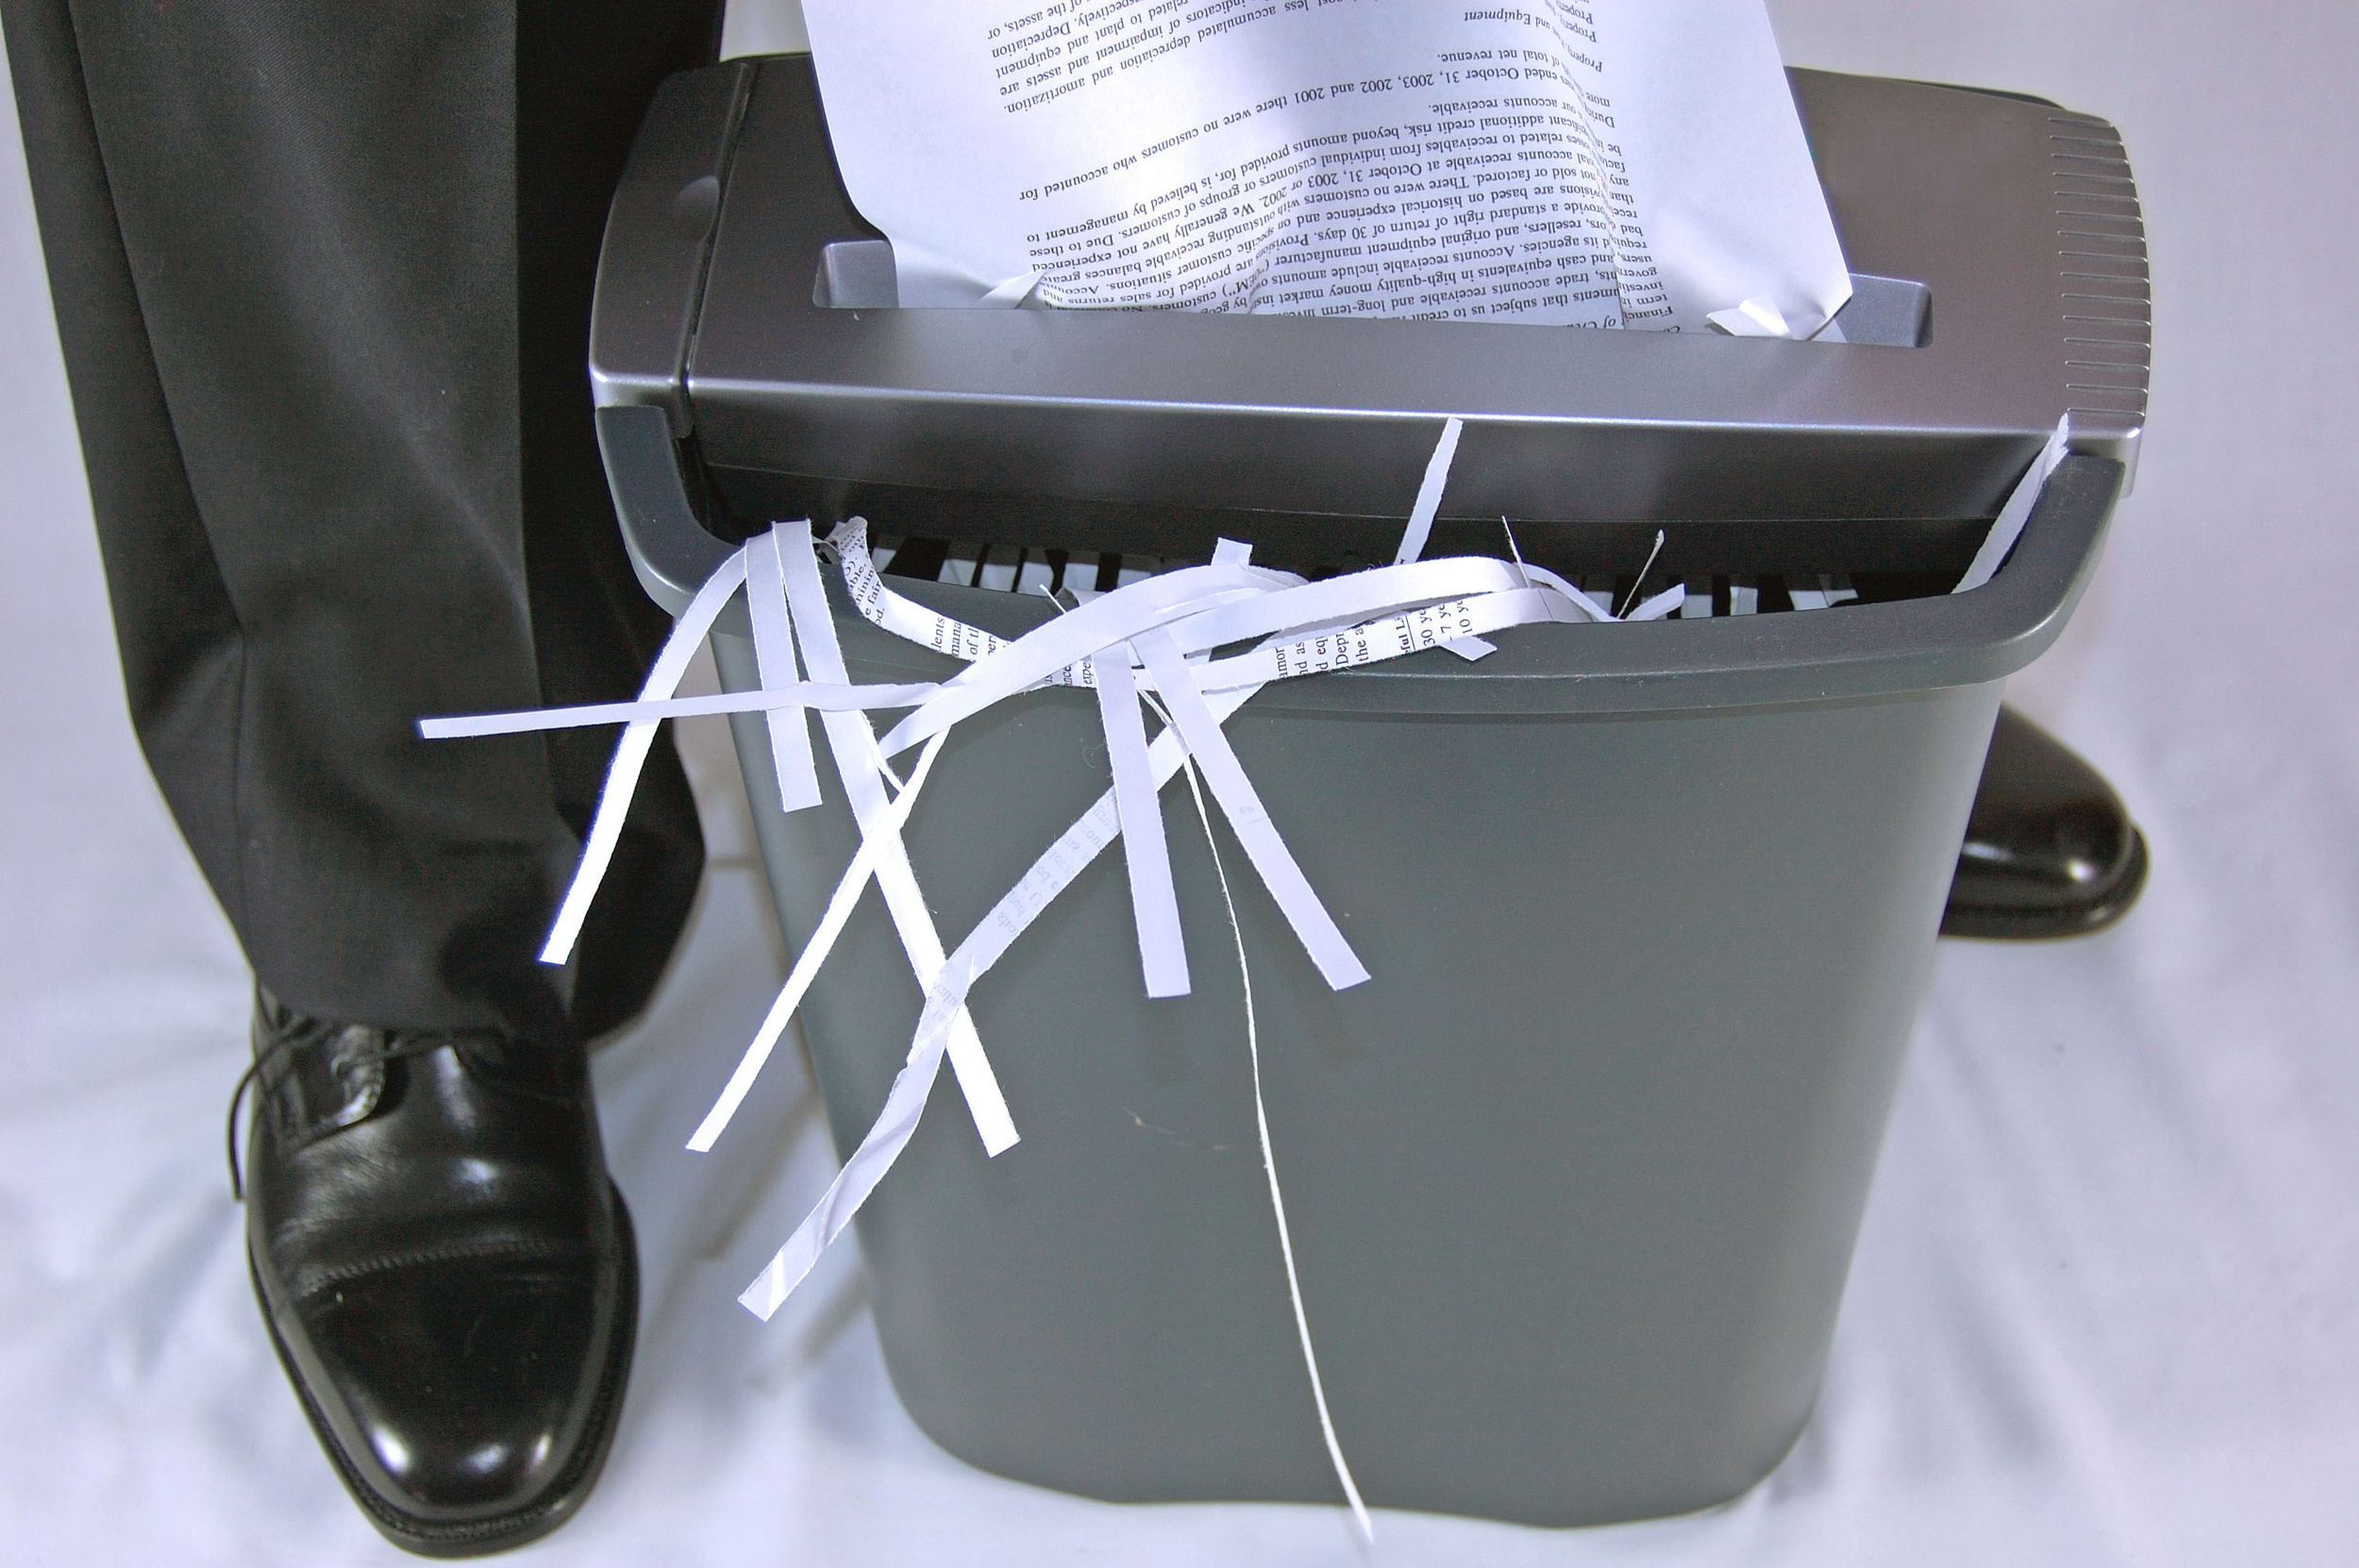 man disposing documents with a paper shredder